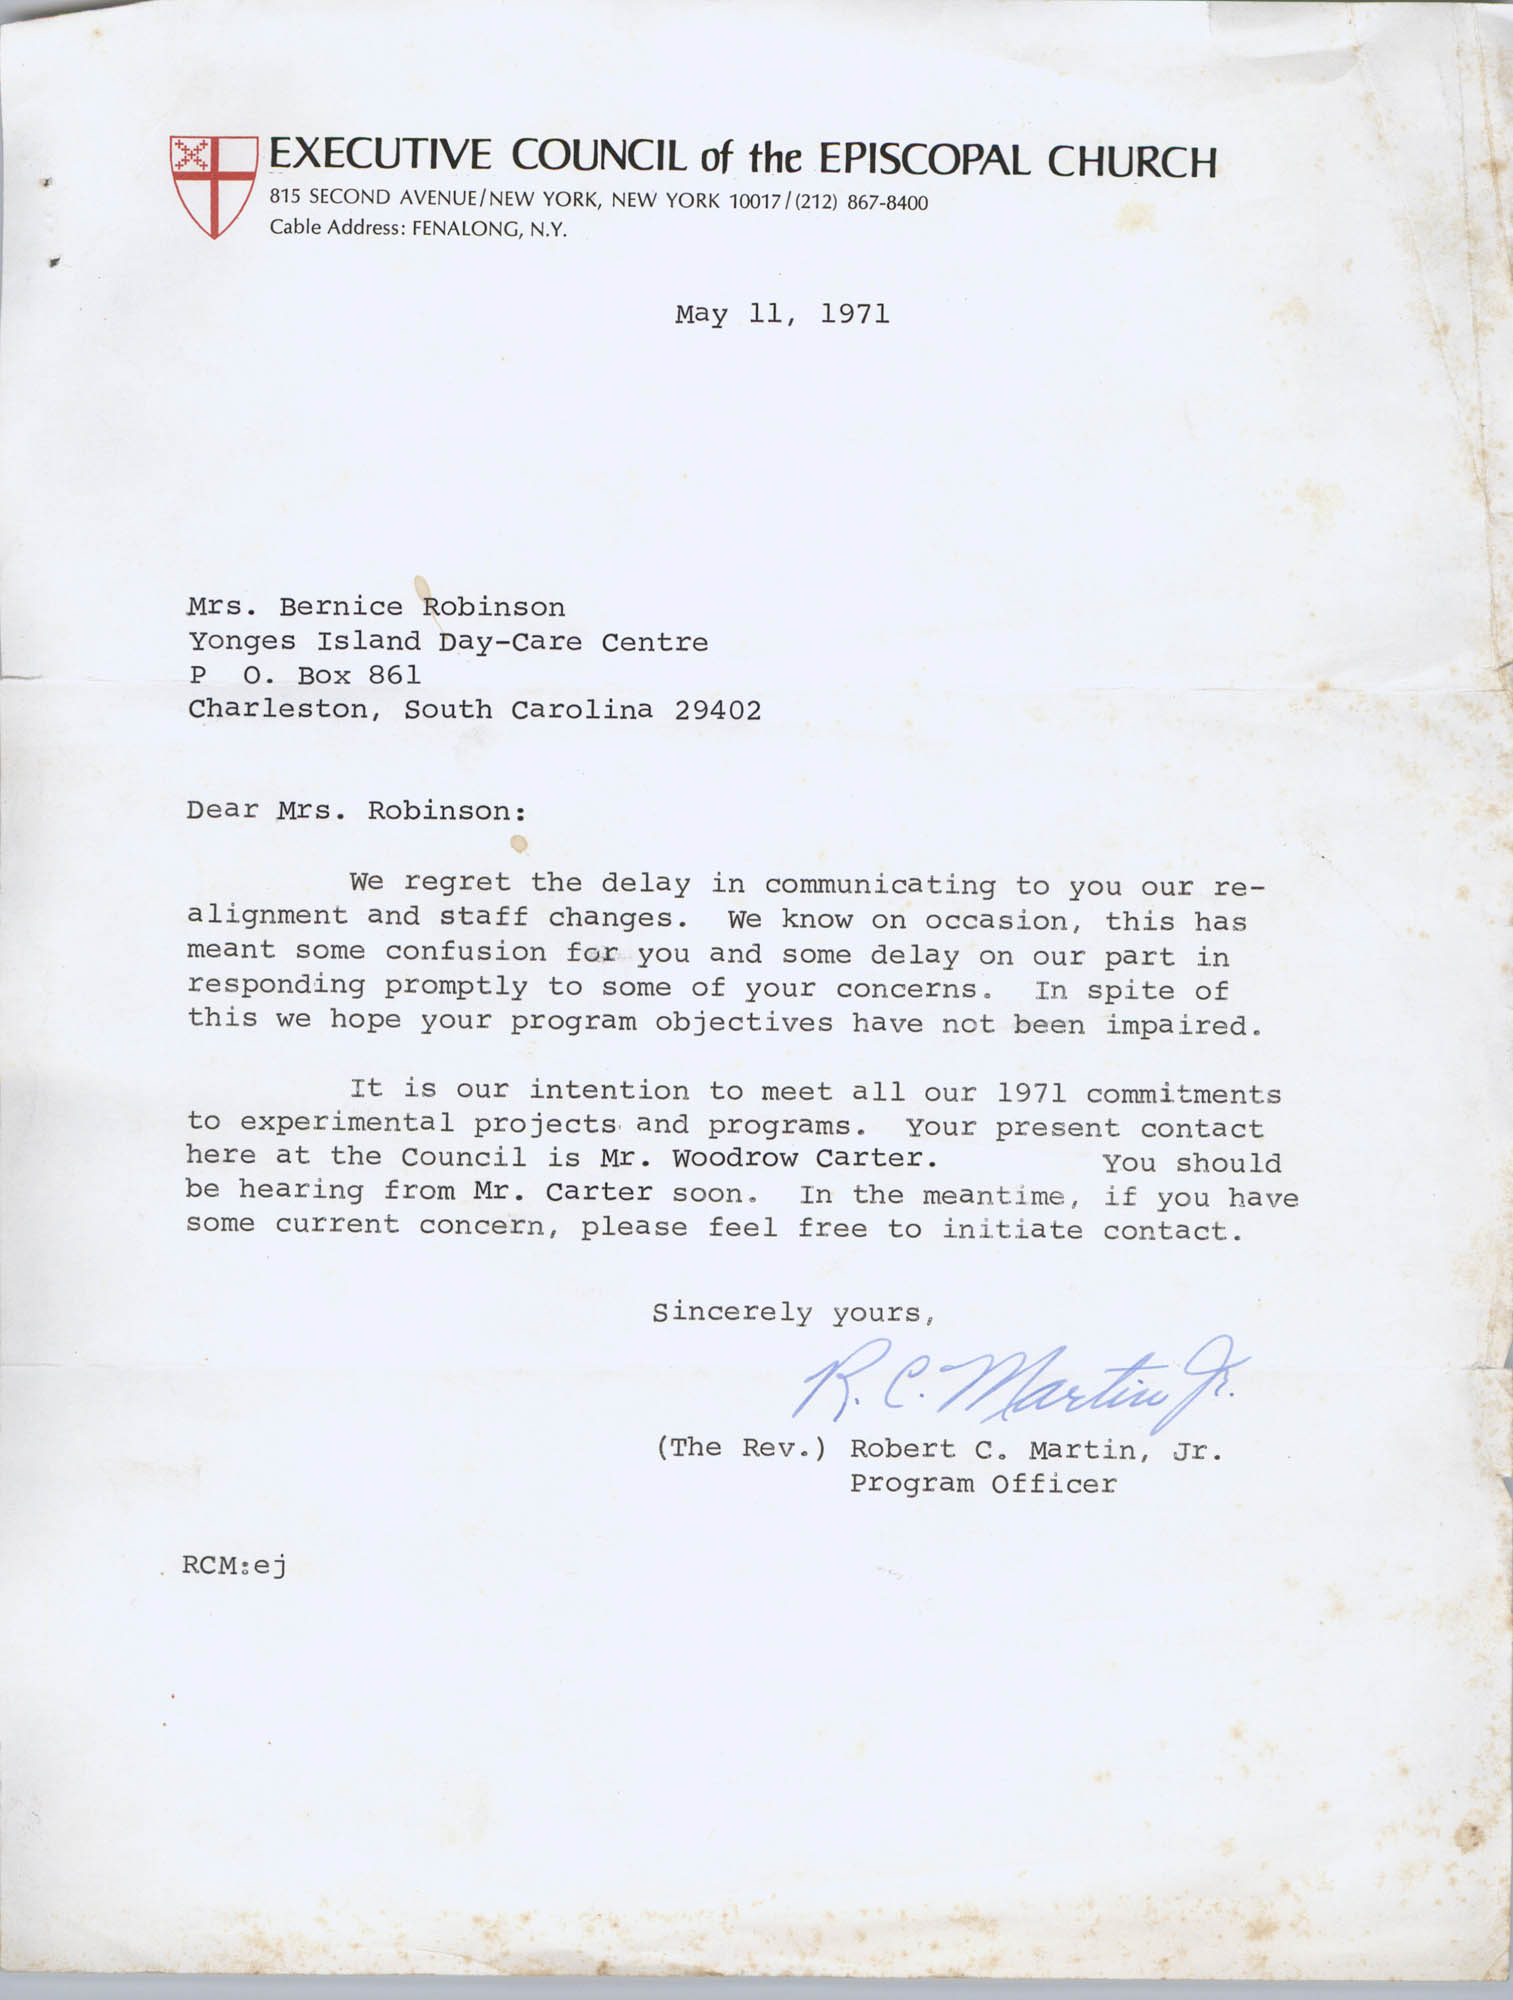 Letter from Robert C. Martin, Jr. to Bernice Robinson, May 11, 1971